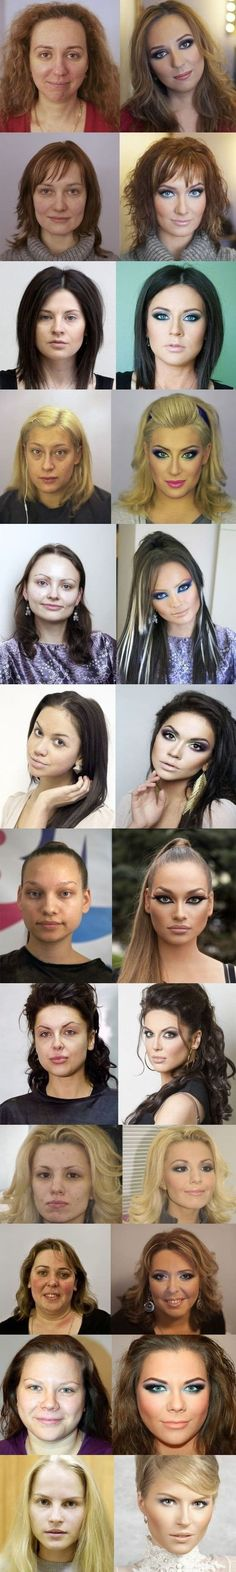 Before & after make-up . Everyone is gorgeous with the right amount of makeup, hairstyling, and filters. We should not run from enhancing our beauty--but neither should we be dictated by it.